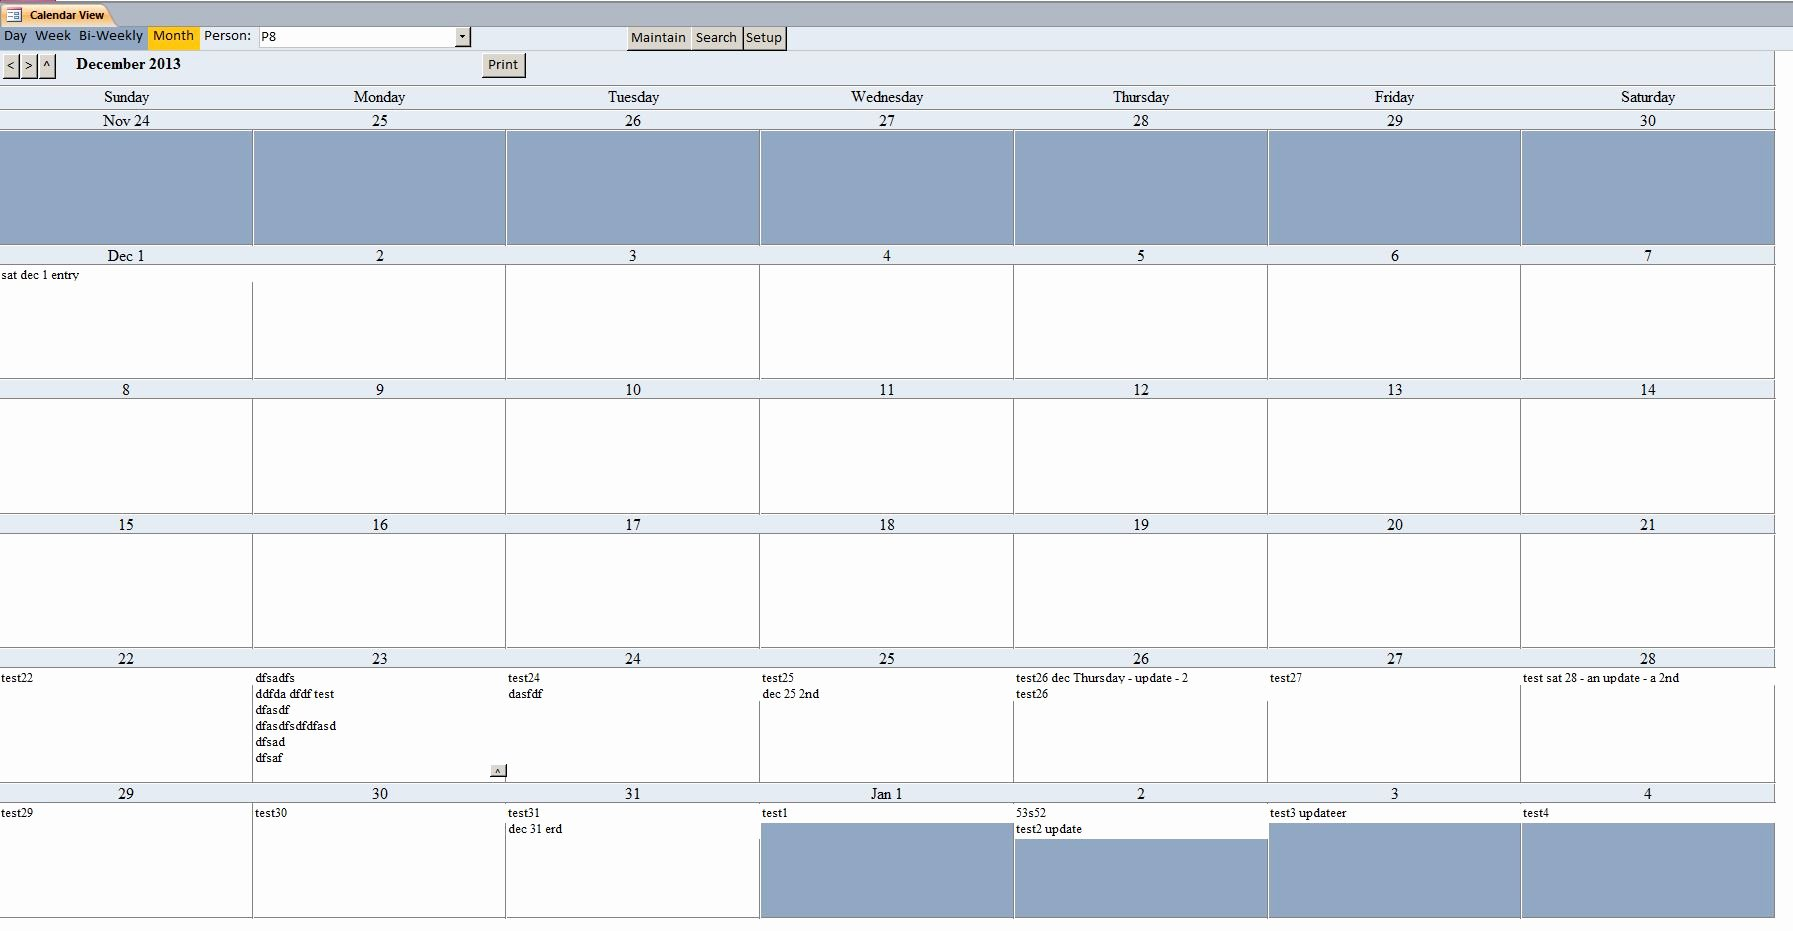 Microsoft Access Scheduling Template Luxury Basic Microsoft Access Calendar Scheduling Database Template